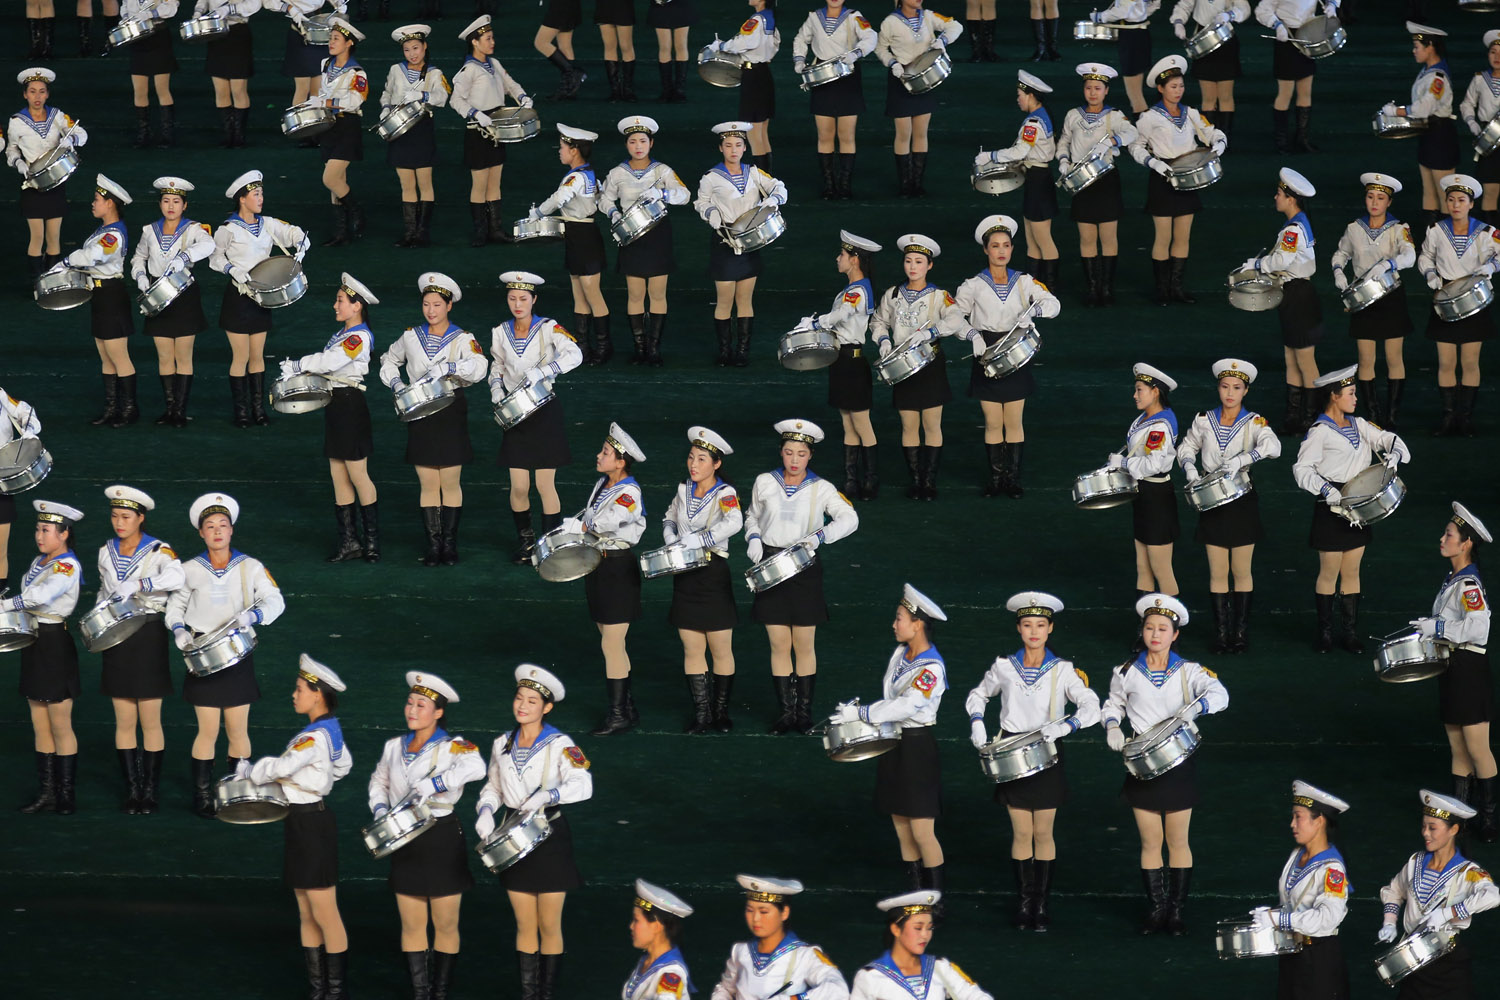 July 22, 2013. Performers participate in the Arirang mass games in Pyongyang, North Korea.